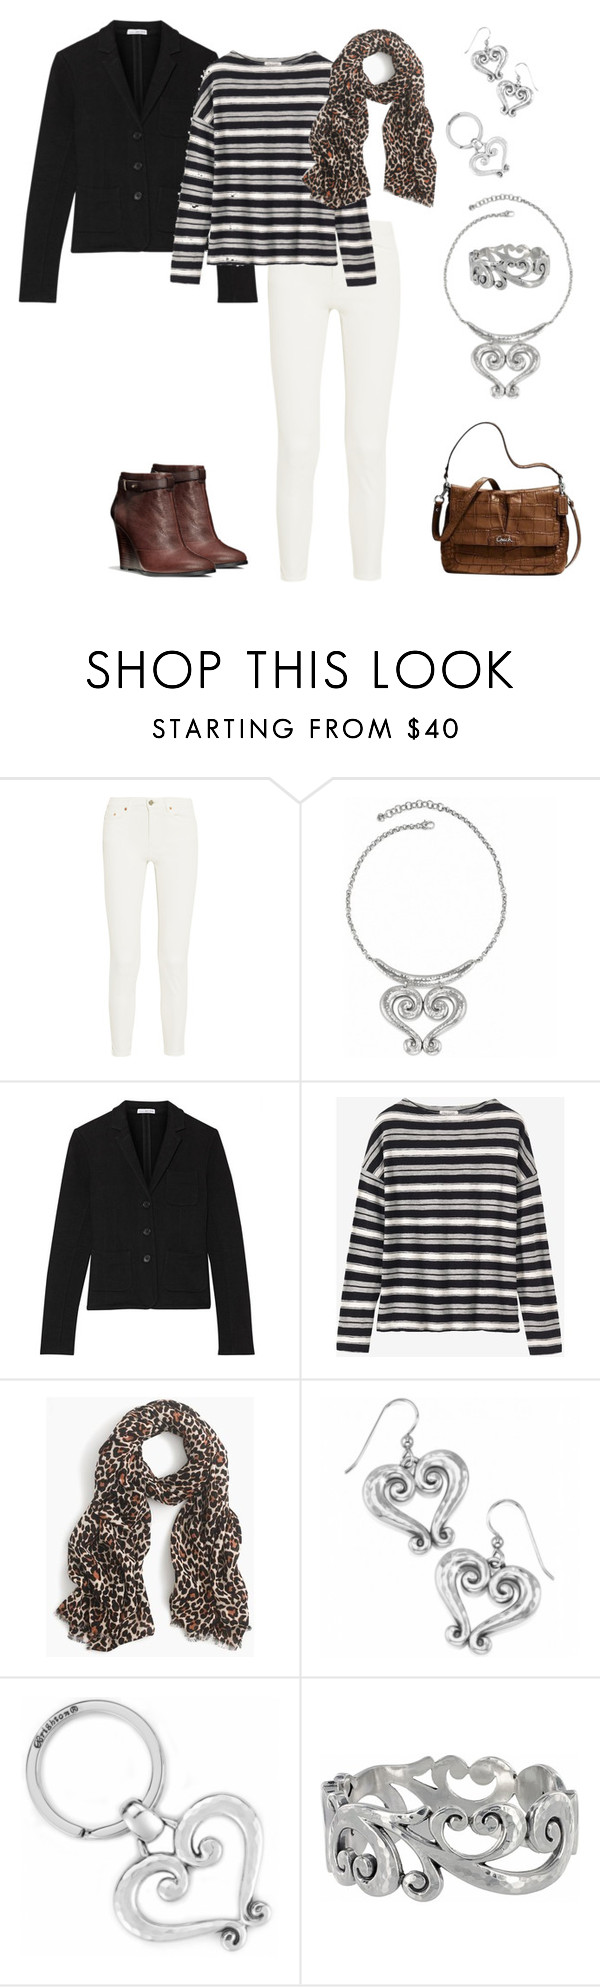 """Untitled #244"" by aimemcc13 on Polyvore featuring Acne Studios, James Perse, J.Crew and Coach"